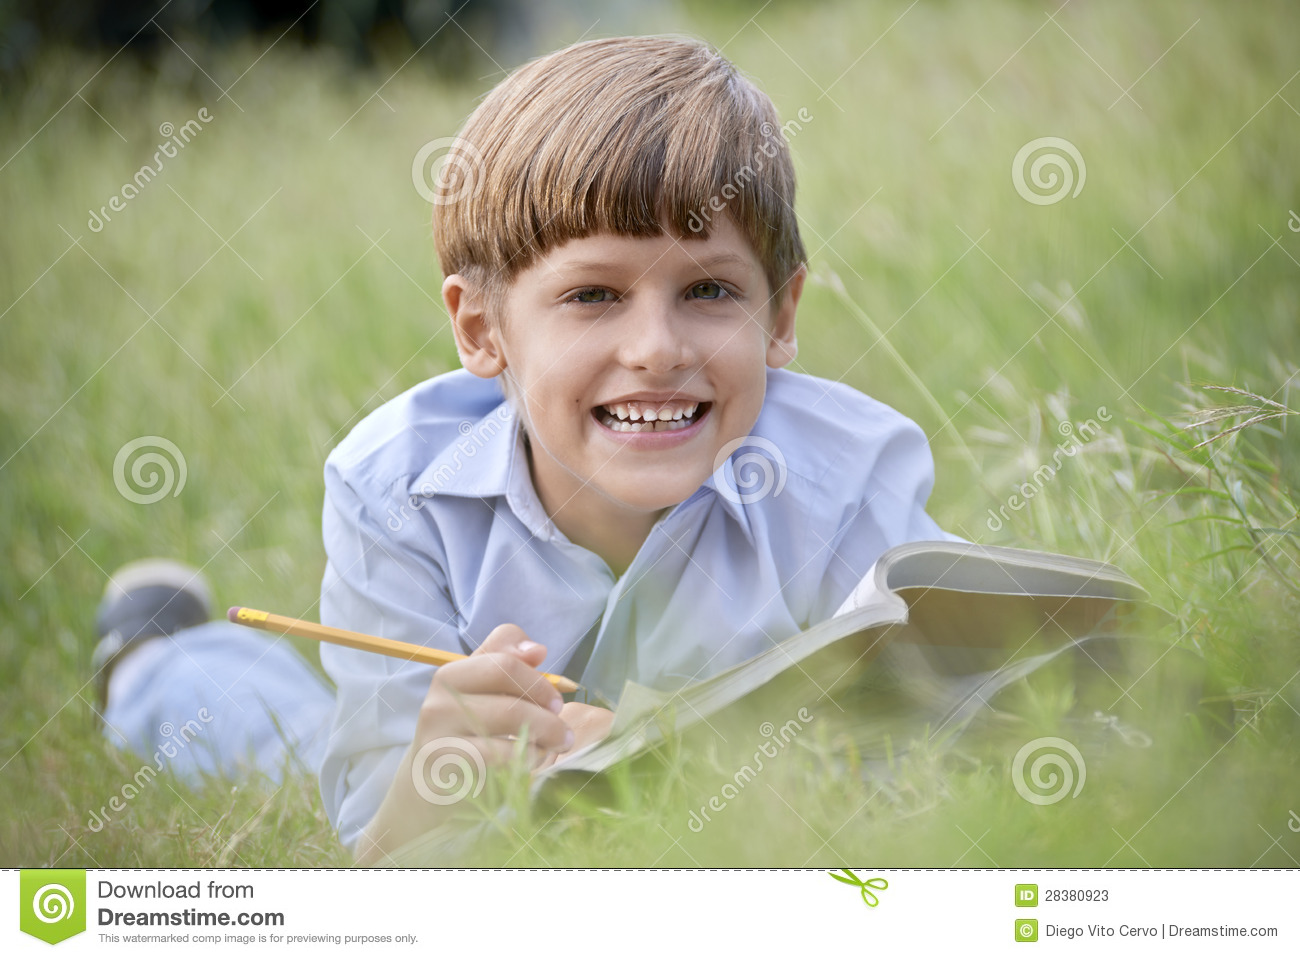 ... Listening To Music While Doing Homework Stock Photo - Image: 44821005